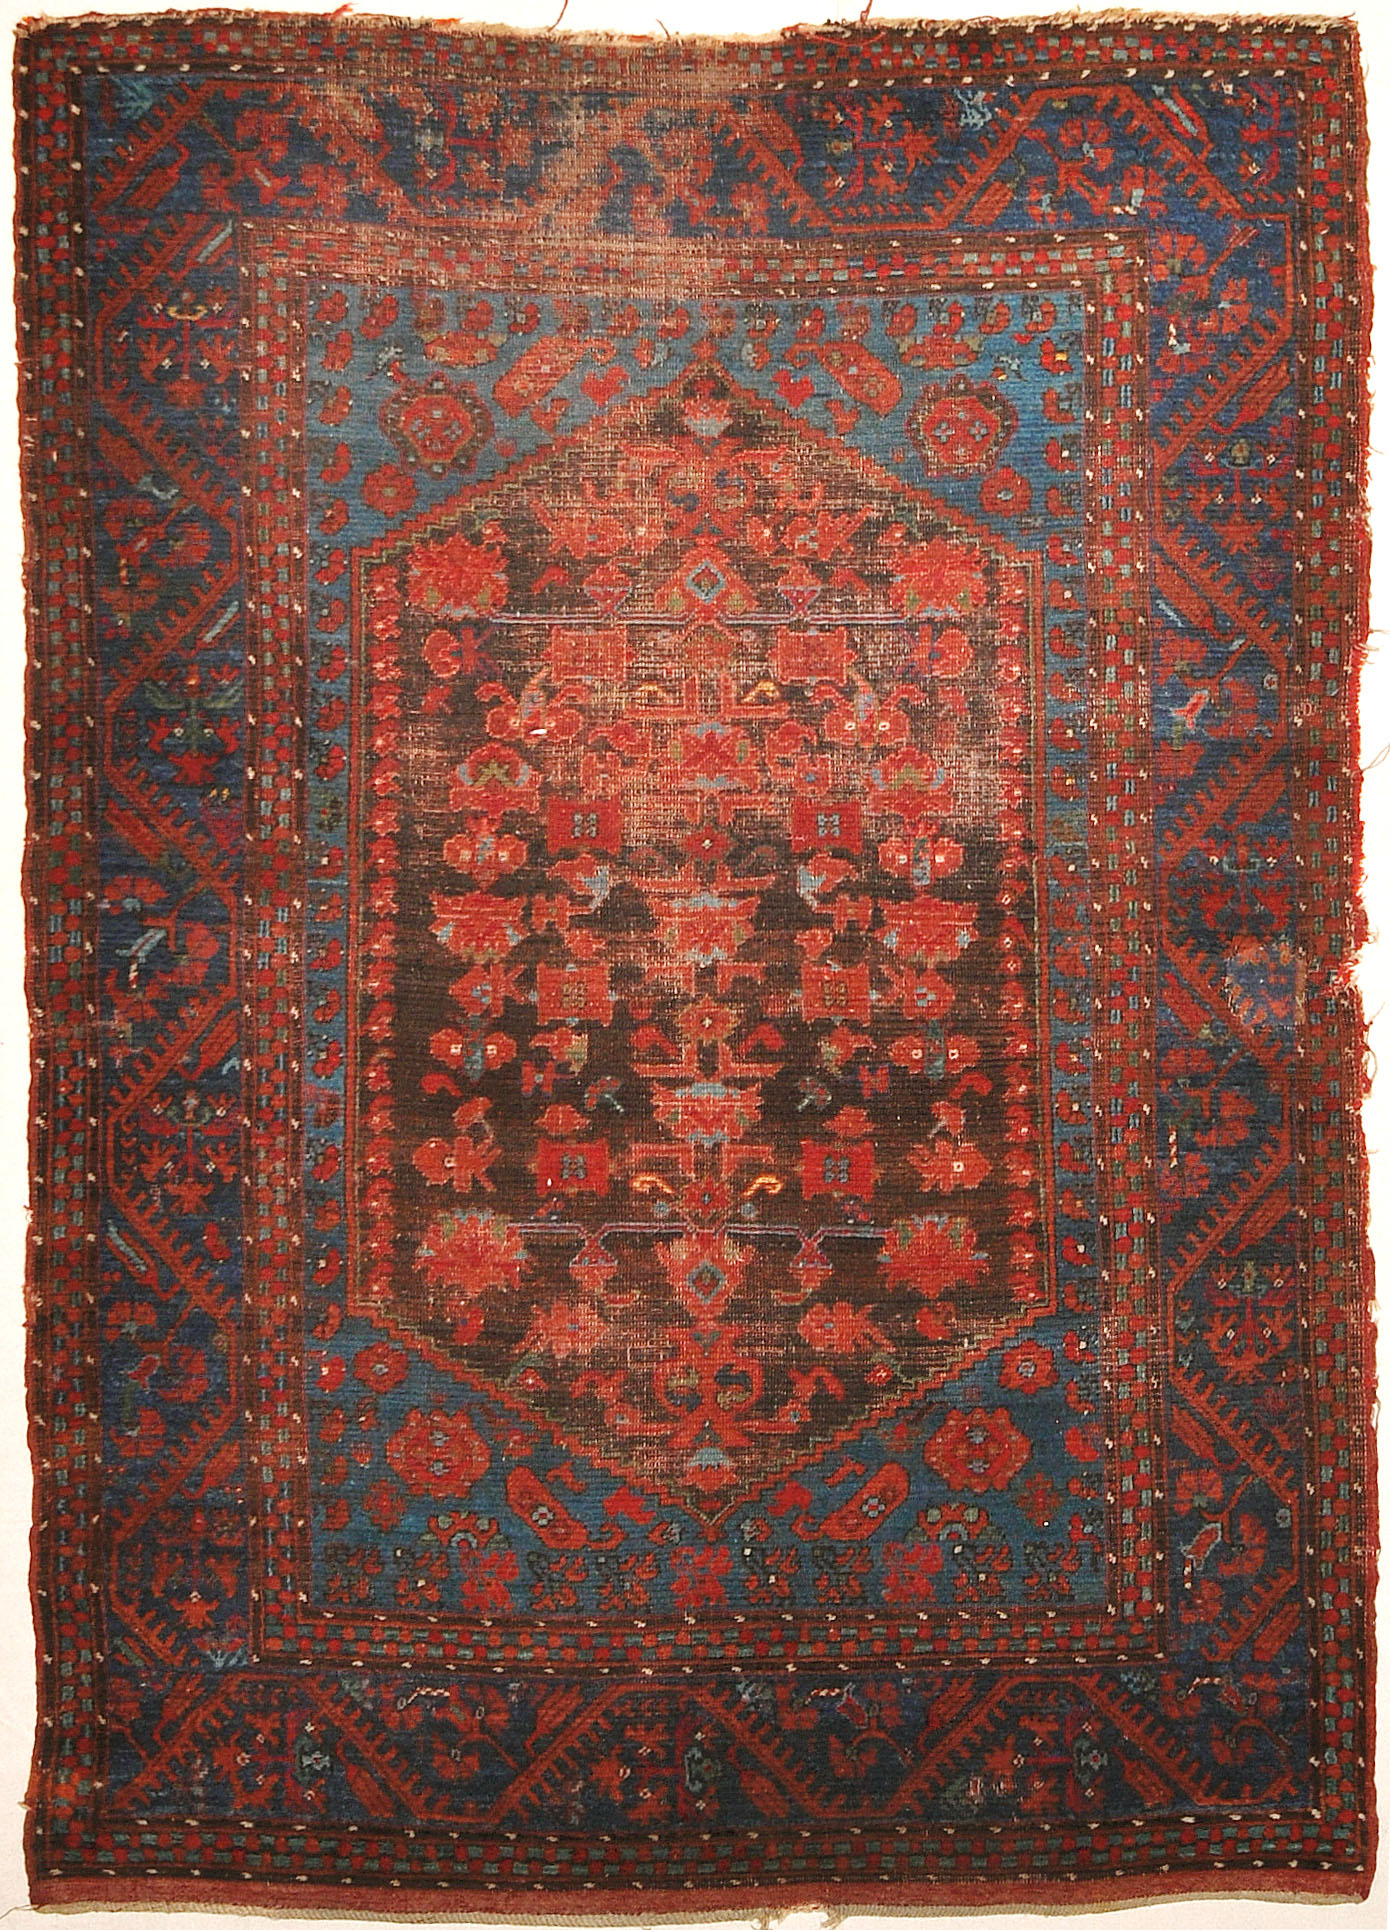 Antique Turkish Kula Rug Circa 1880 Santa Barbara Design